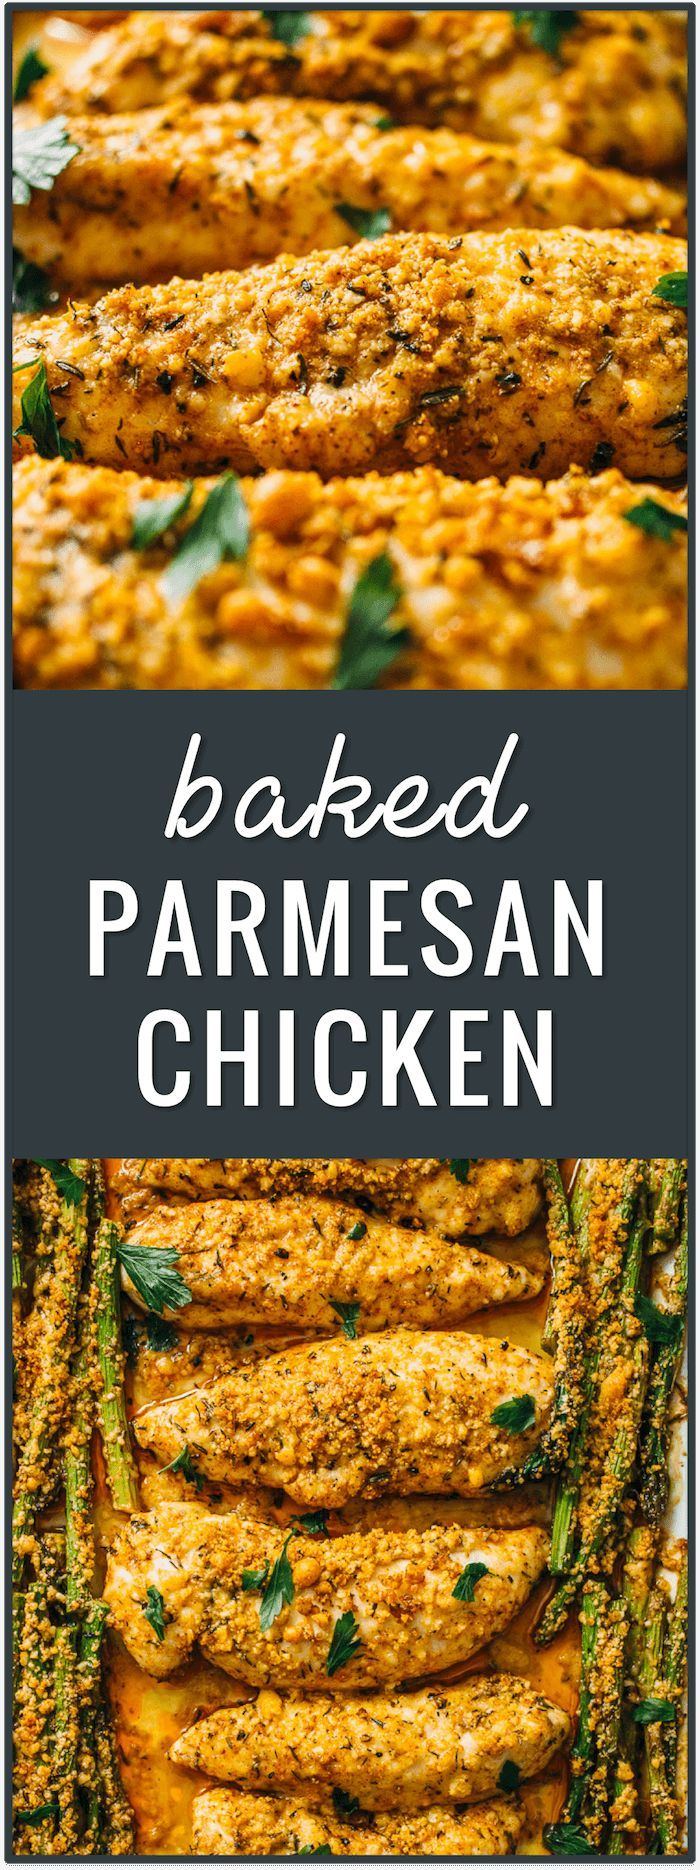 baked parmesan chicken, asparagus, roasted chicken tenders, recipe, easy, dinner, bake, fast, healthy, parmesan crusted, no breading, lunch, vegetables via @savory_tooth